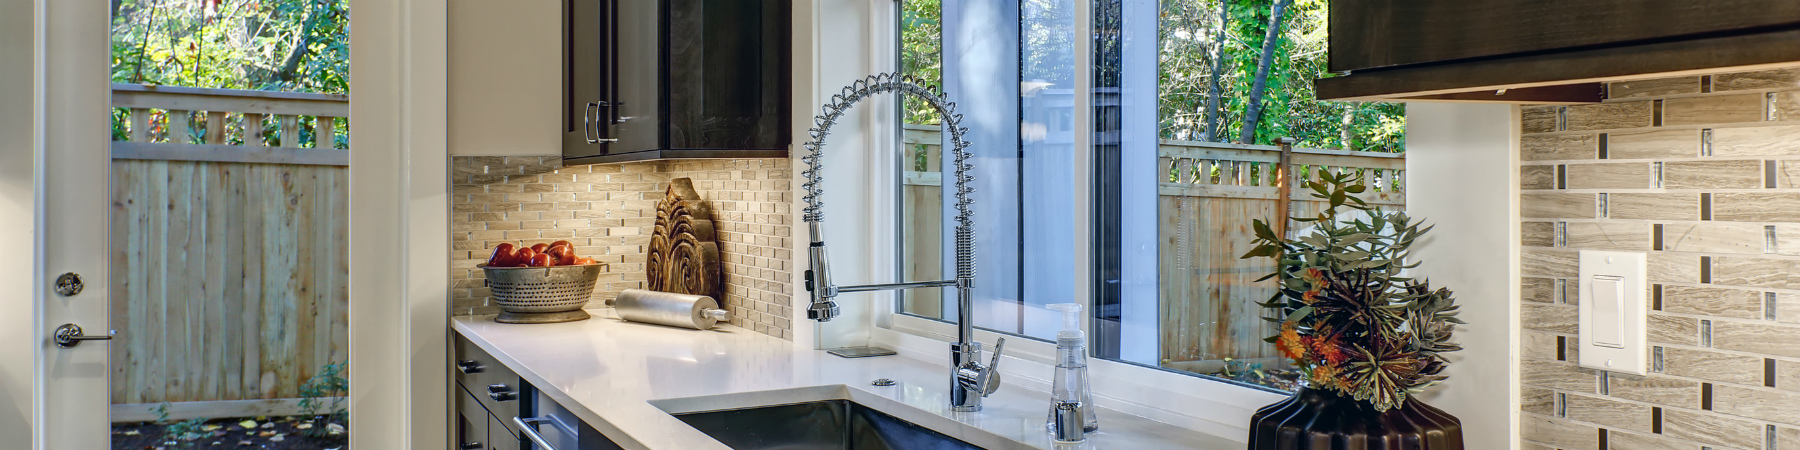 Contemporary kitchen tile backsplash chrome faucet